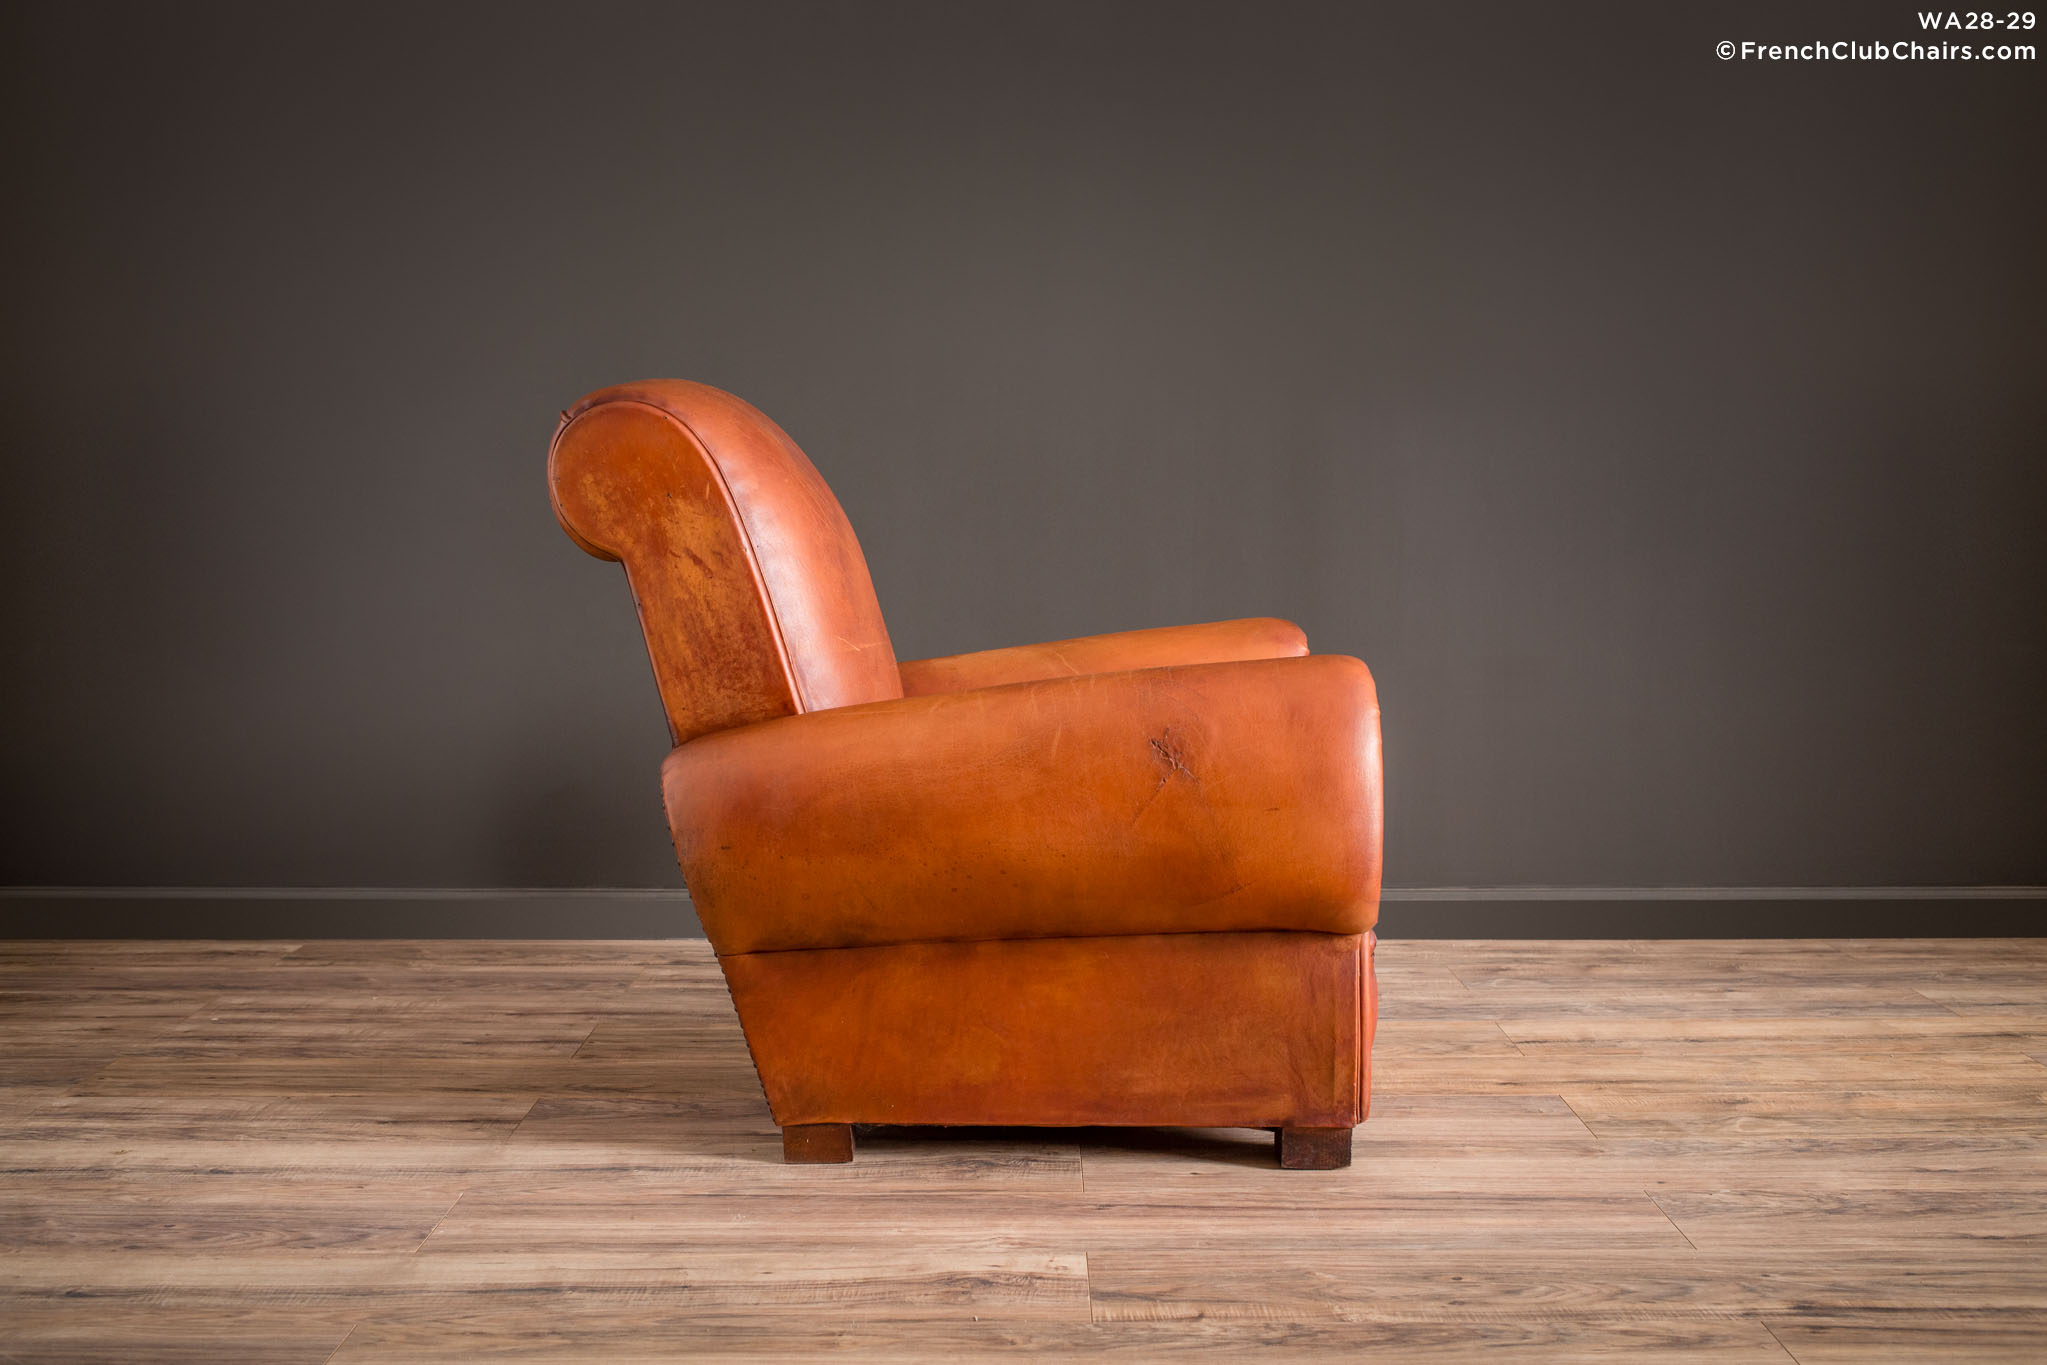 WA_28-29_Giant_Lille_Caramel_Rollback_Solo_R_3RT1-williams-antiks-leather-french-club-chair-wa_fcccom